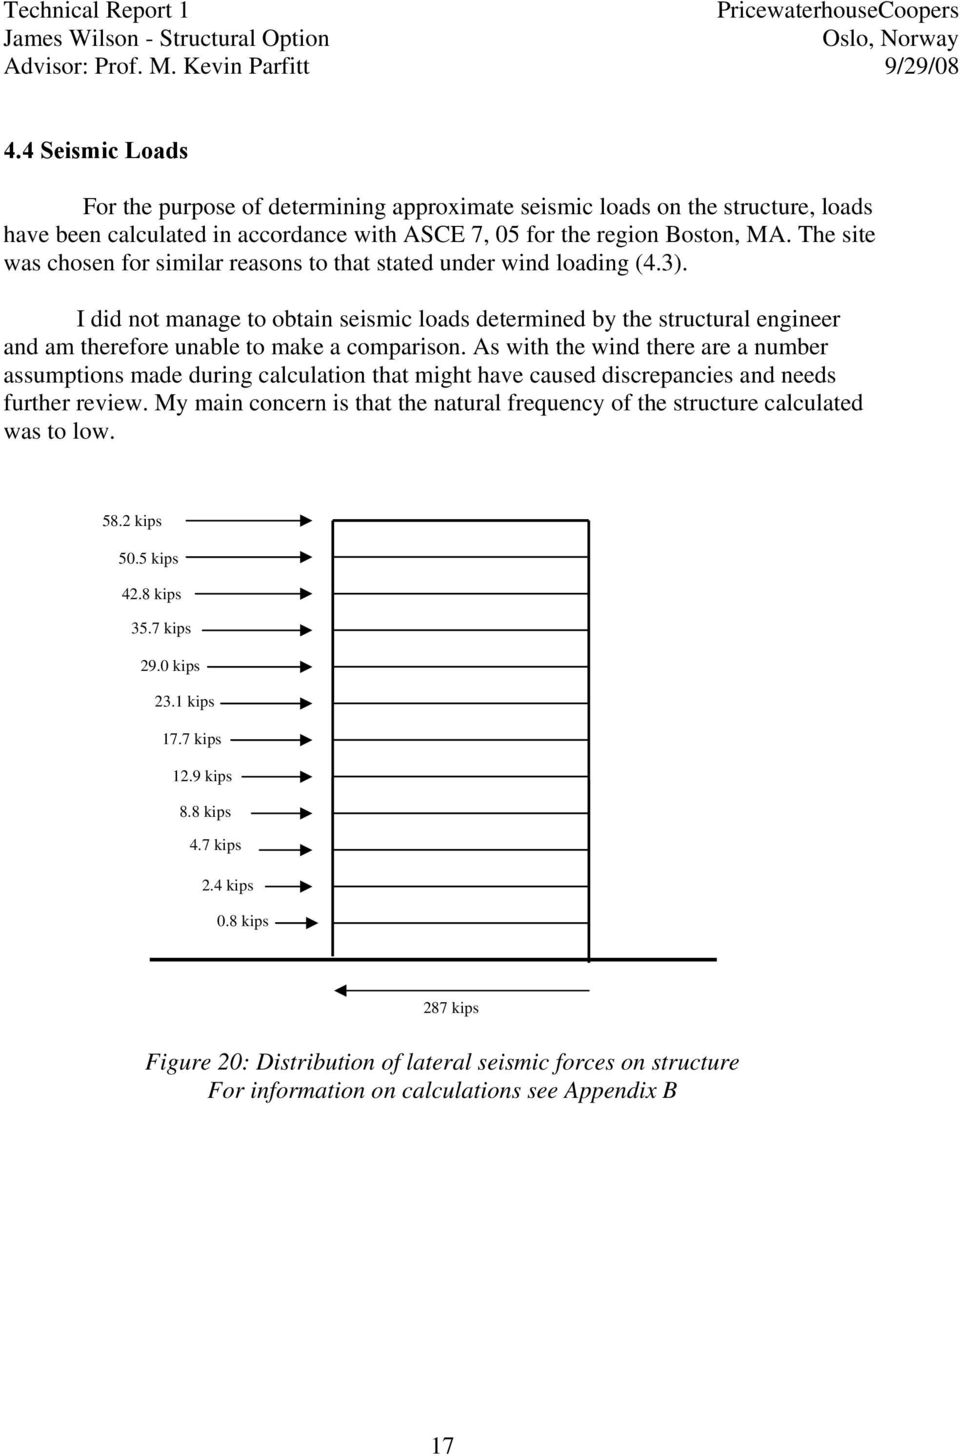 Structural Technical Report 1 Structural Concept